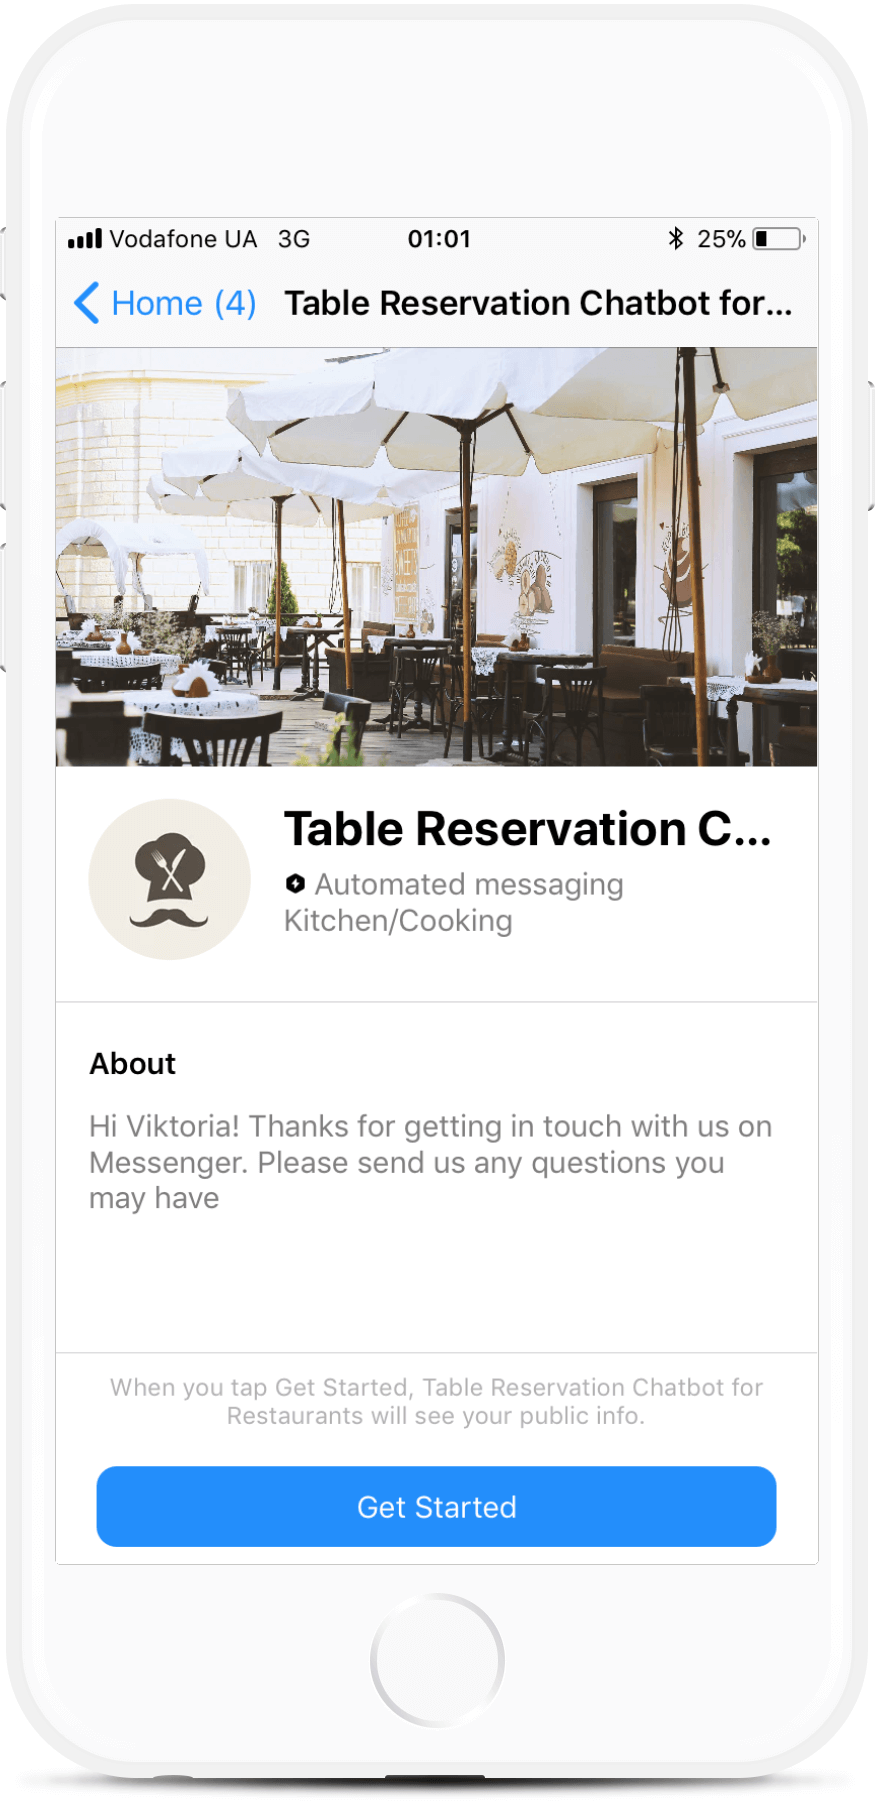 Restaurant Table Reservation Bot Template For Messenger For - Table reservation in restaurant